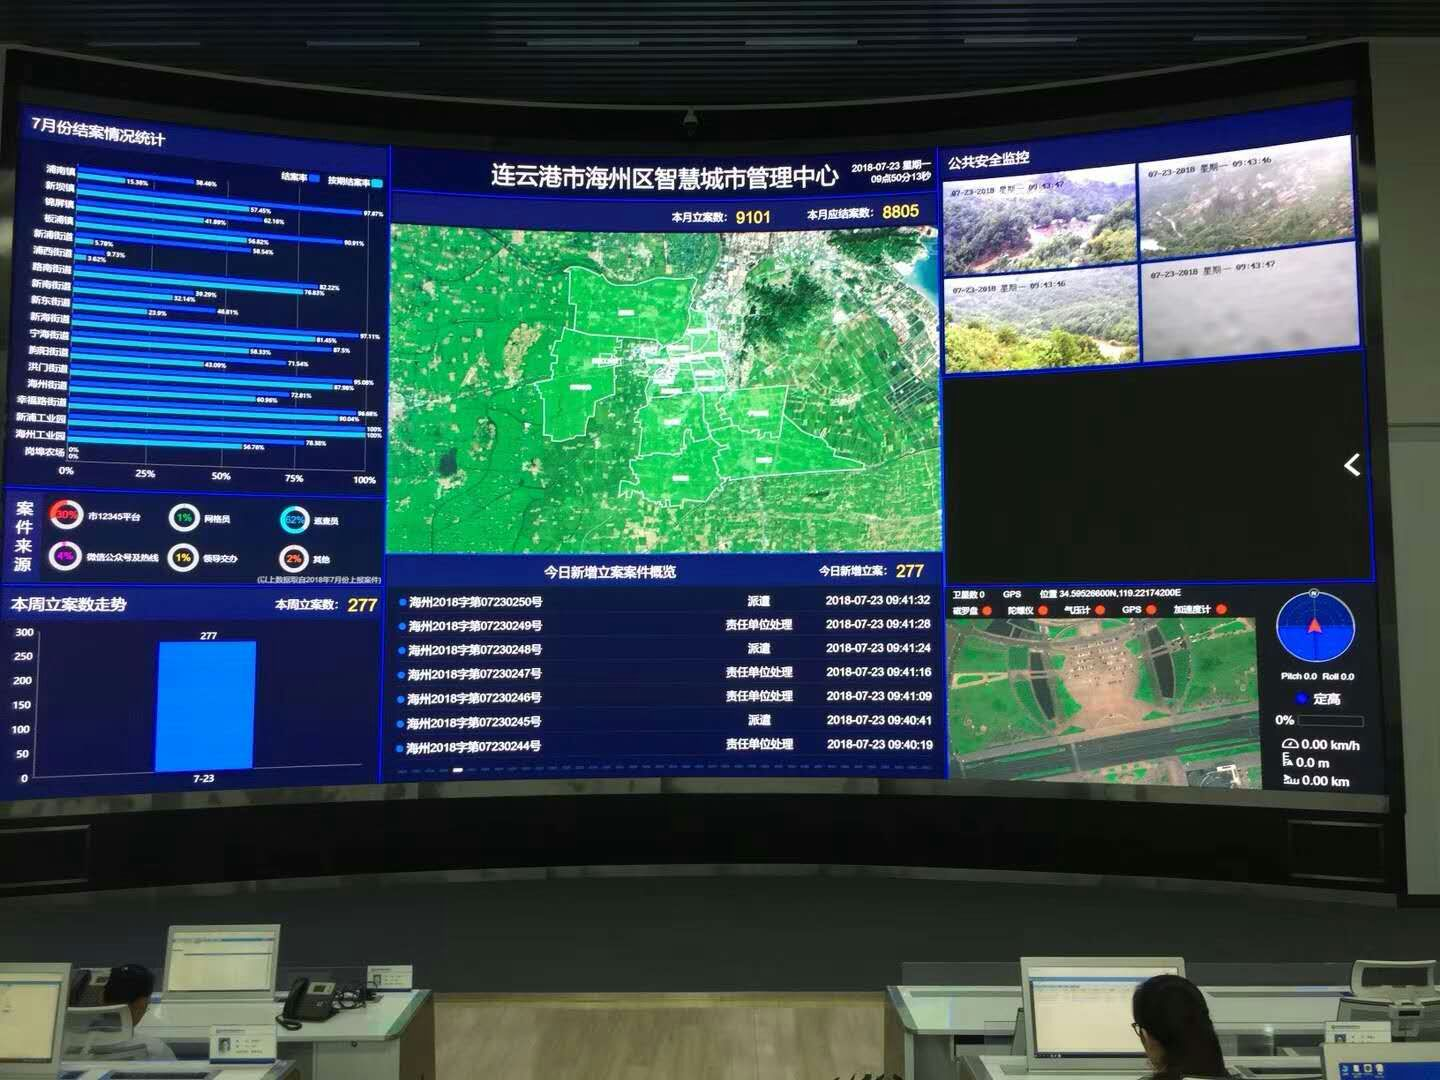 P3 LED display in Jiangsu Lianyungang smart city management center